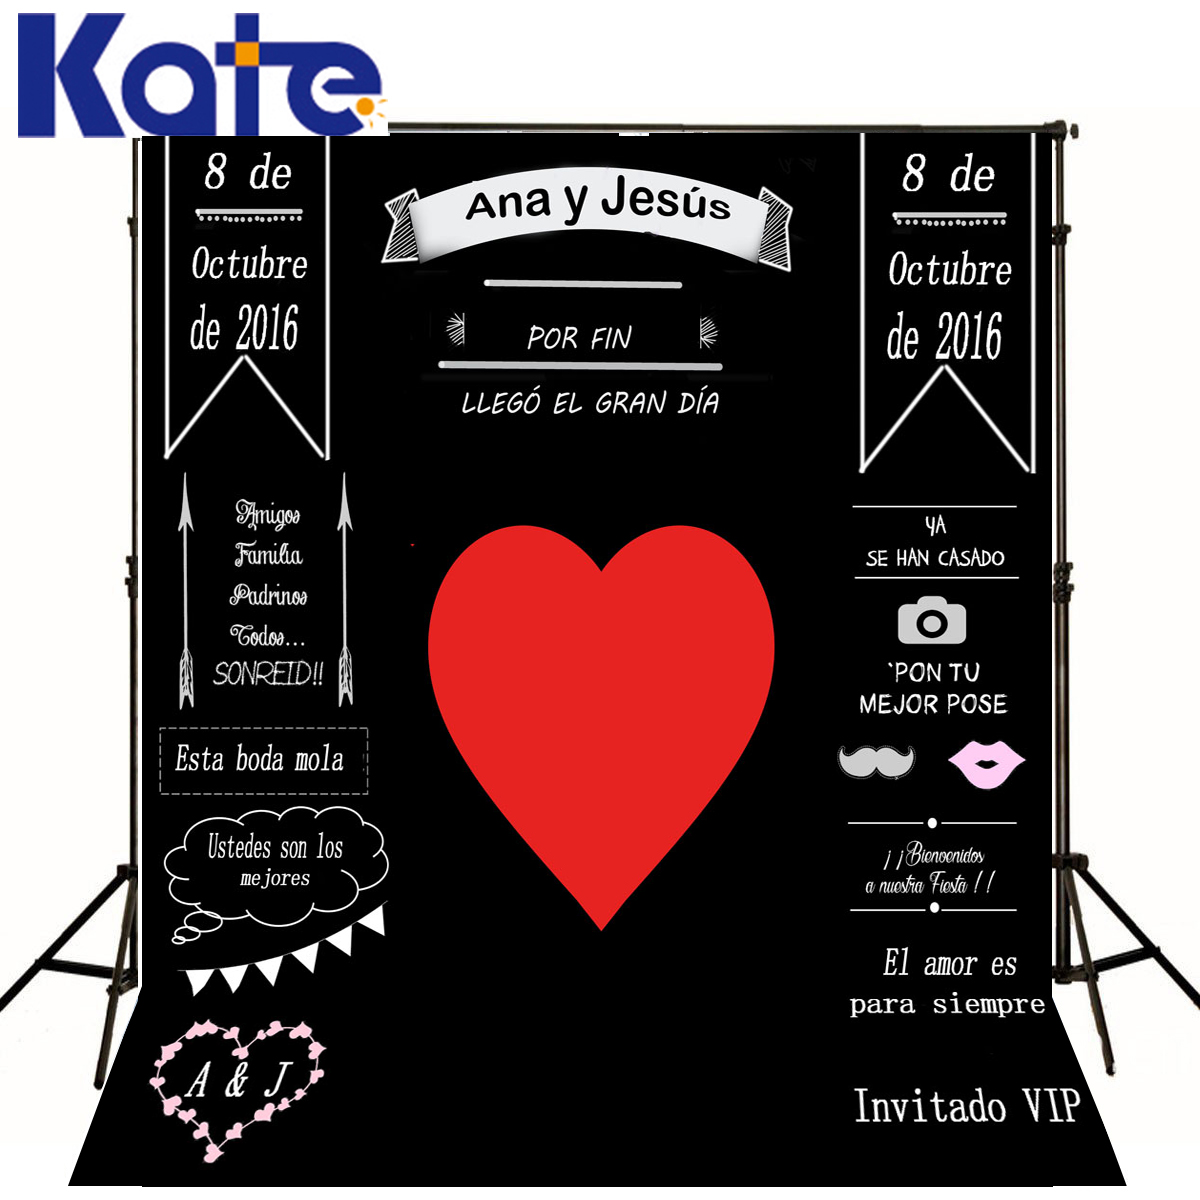 Kate Custom Wedding Blackboard Background Red Heart Can Add Name Symbol Date Change Customise size made fotostudio photocall<br>